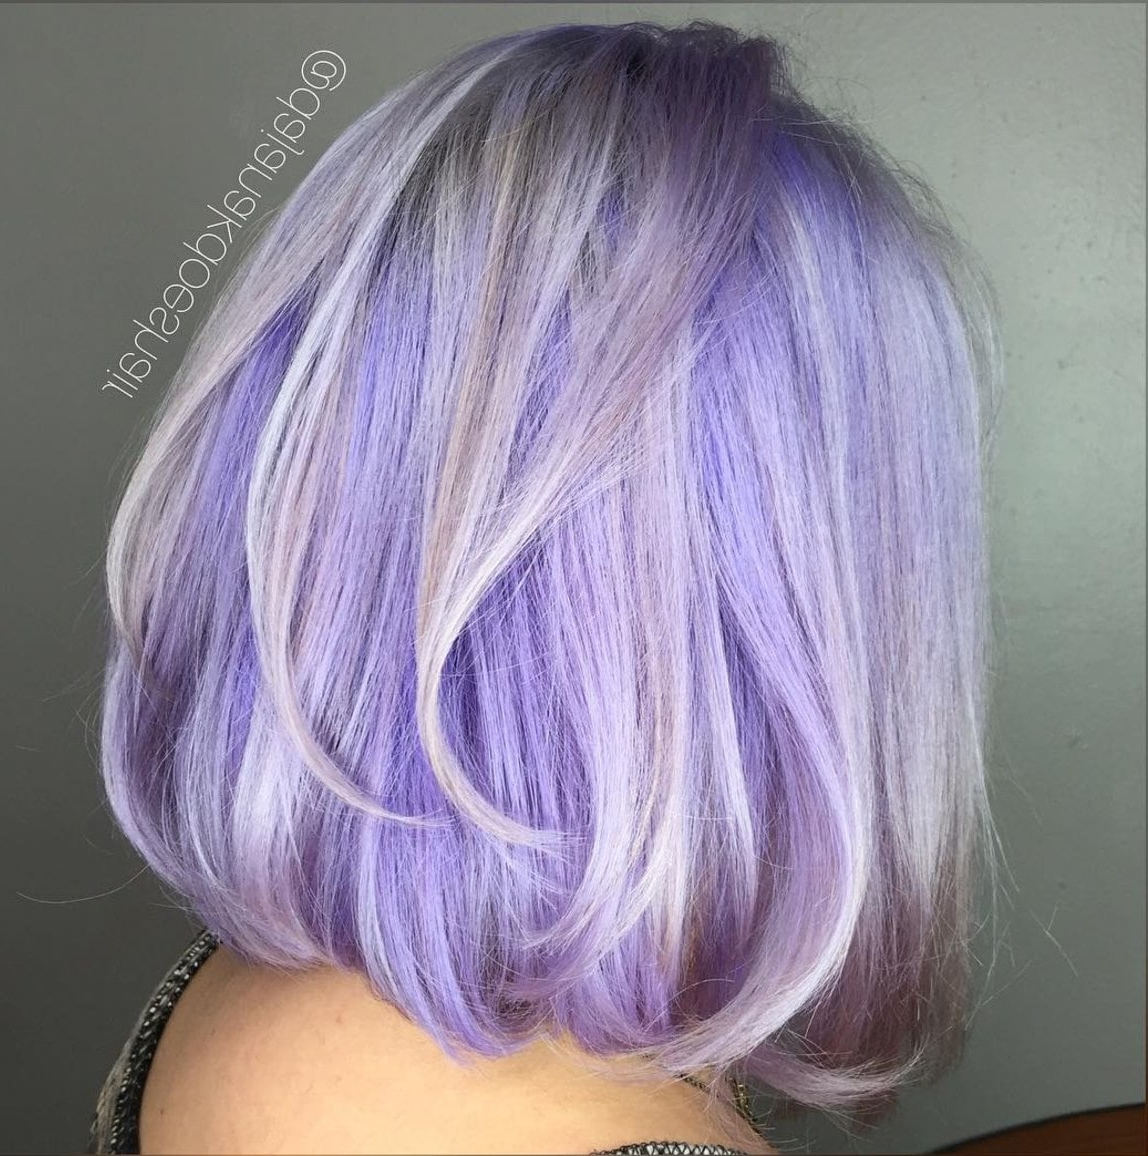 23 Of The Most Stunning Purple Hair Color Ideas Inside Silver Bob Hairstyles With Hint Of Purple (View 5 of 20)